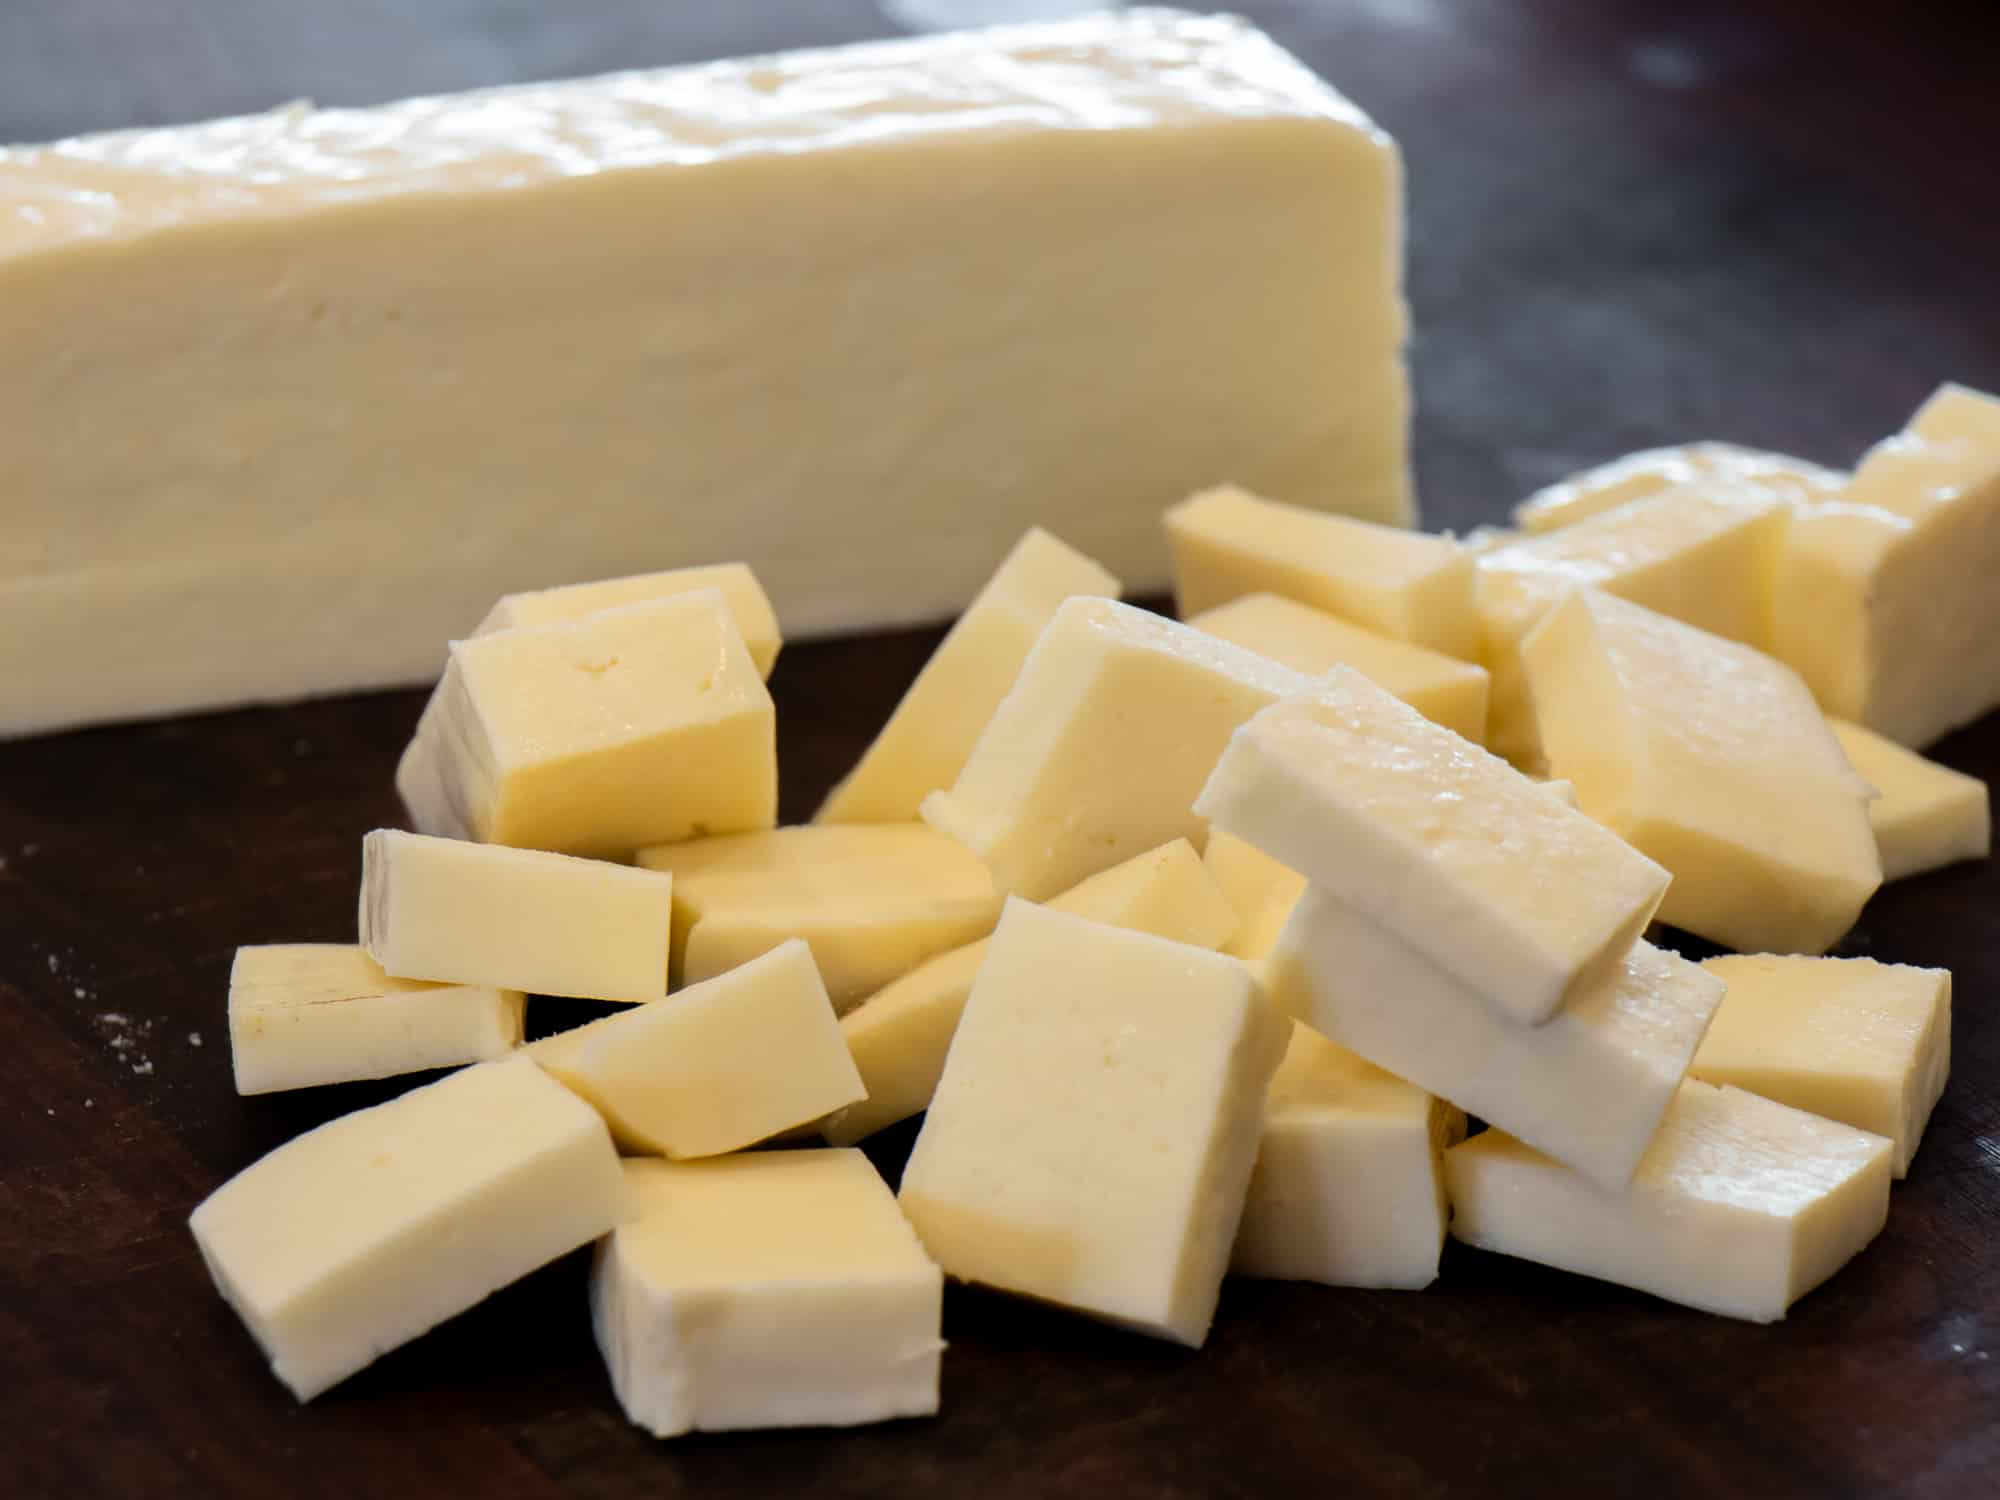 A one pound brick of paneer cheese cut into chunks for Indian matar paneer.